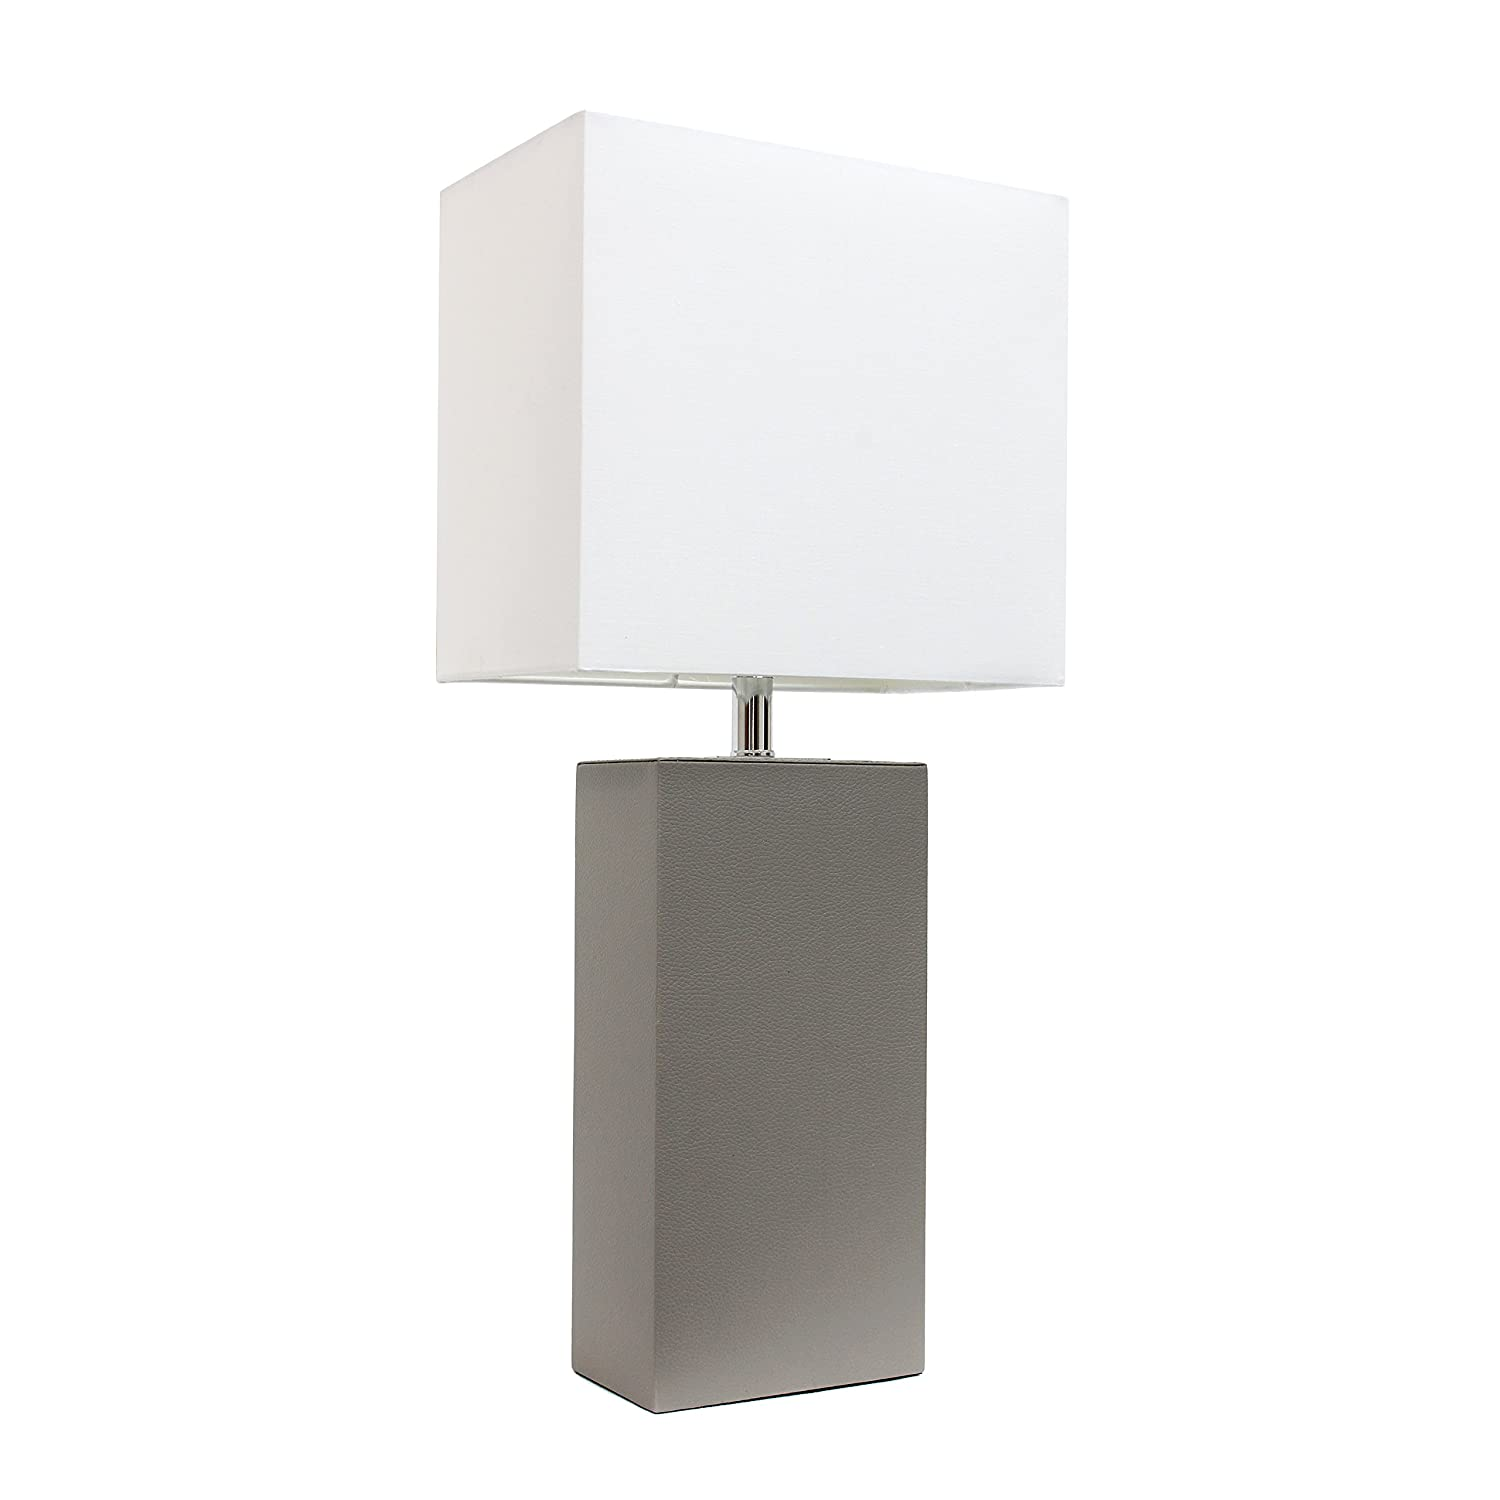 "Elegant Designs LT1025-GRY Modern Leather Table Lamp with White Fabric Shade 3.85"" Gray"